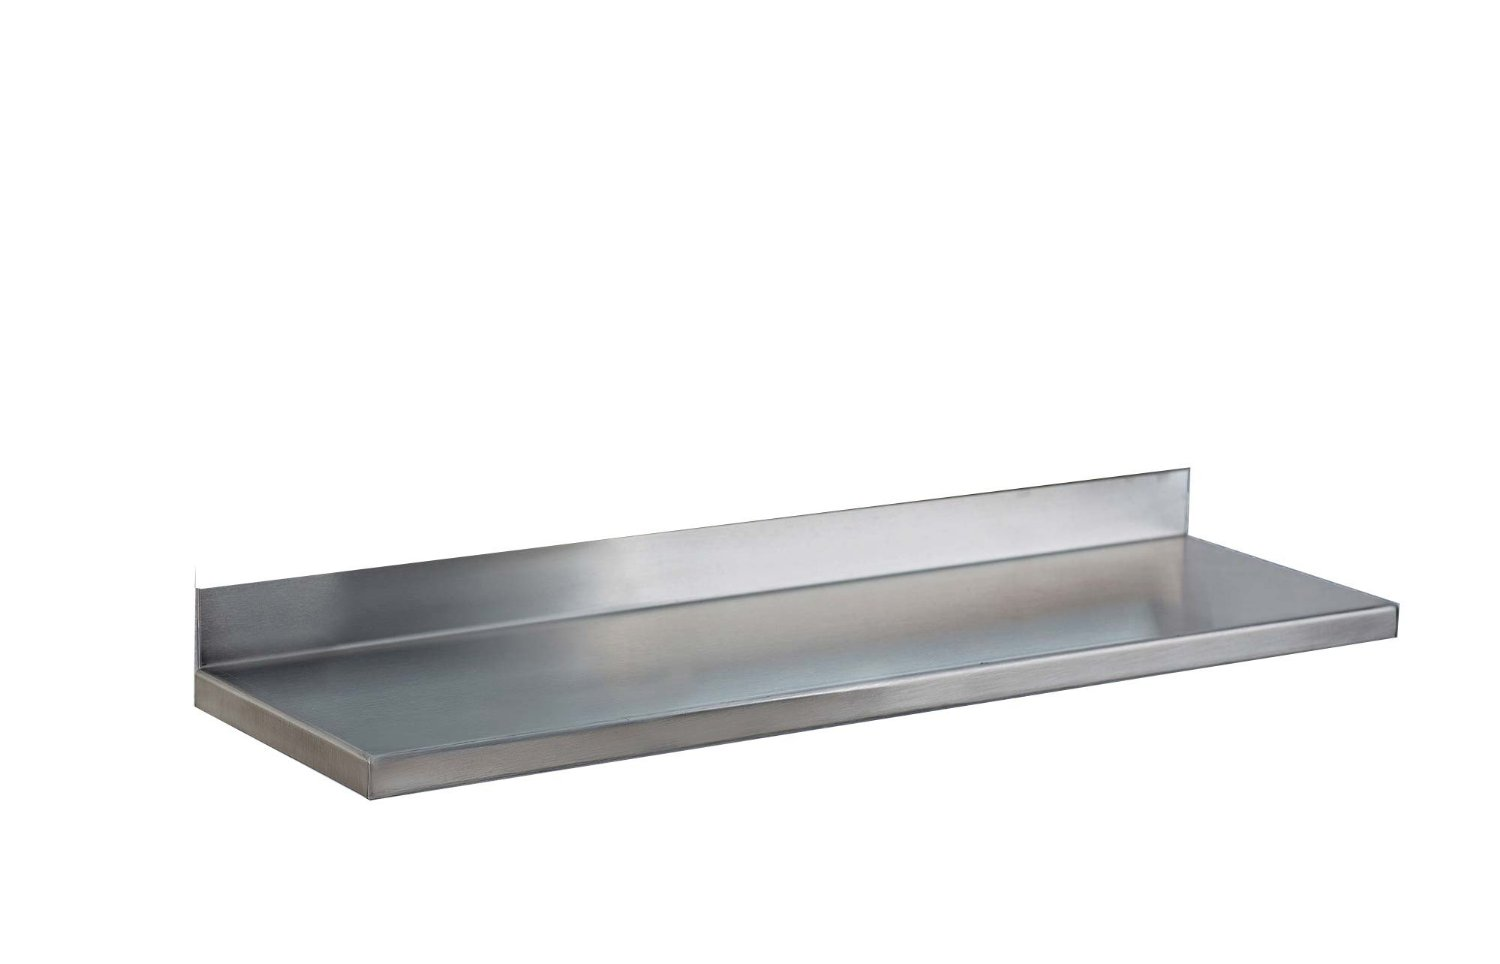 18-inch x 6-inch, Integral shelf, bright finish